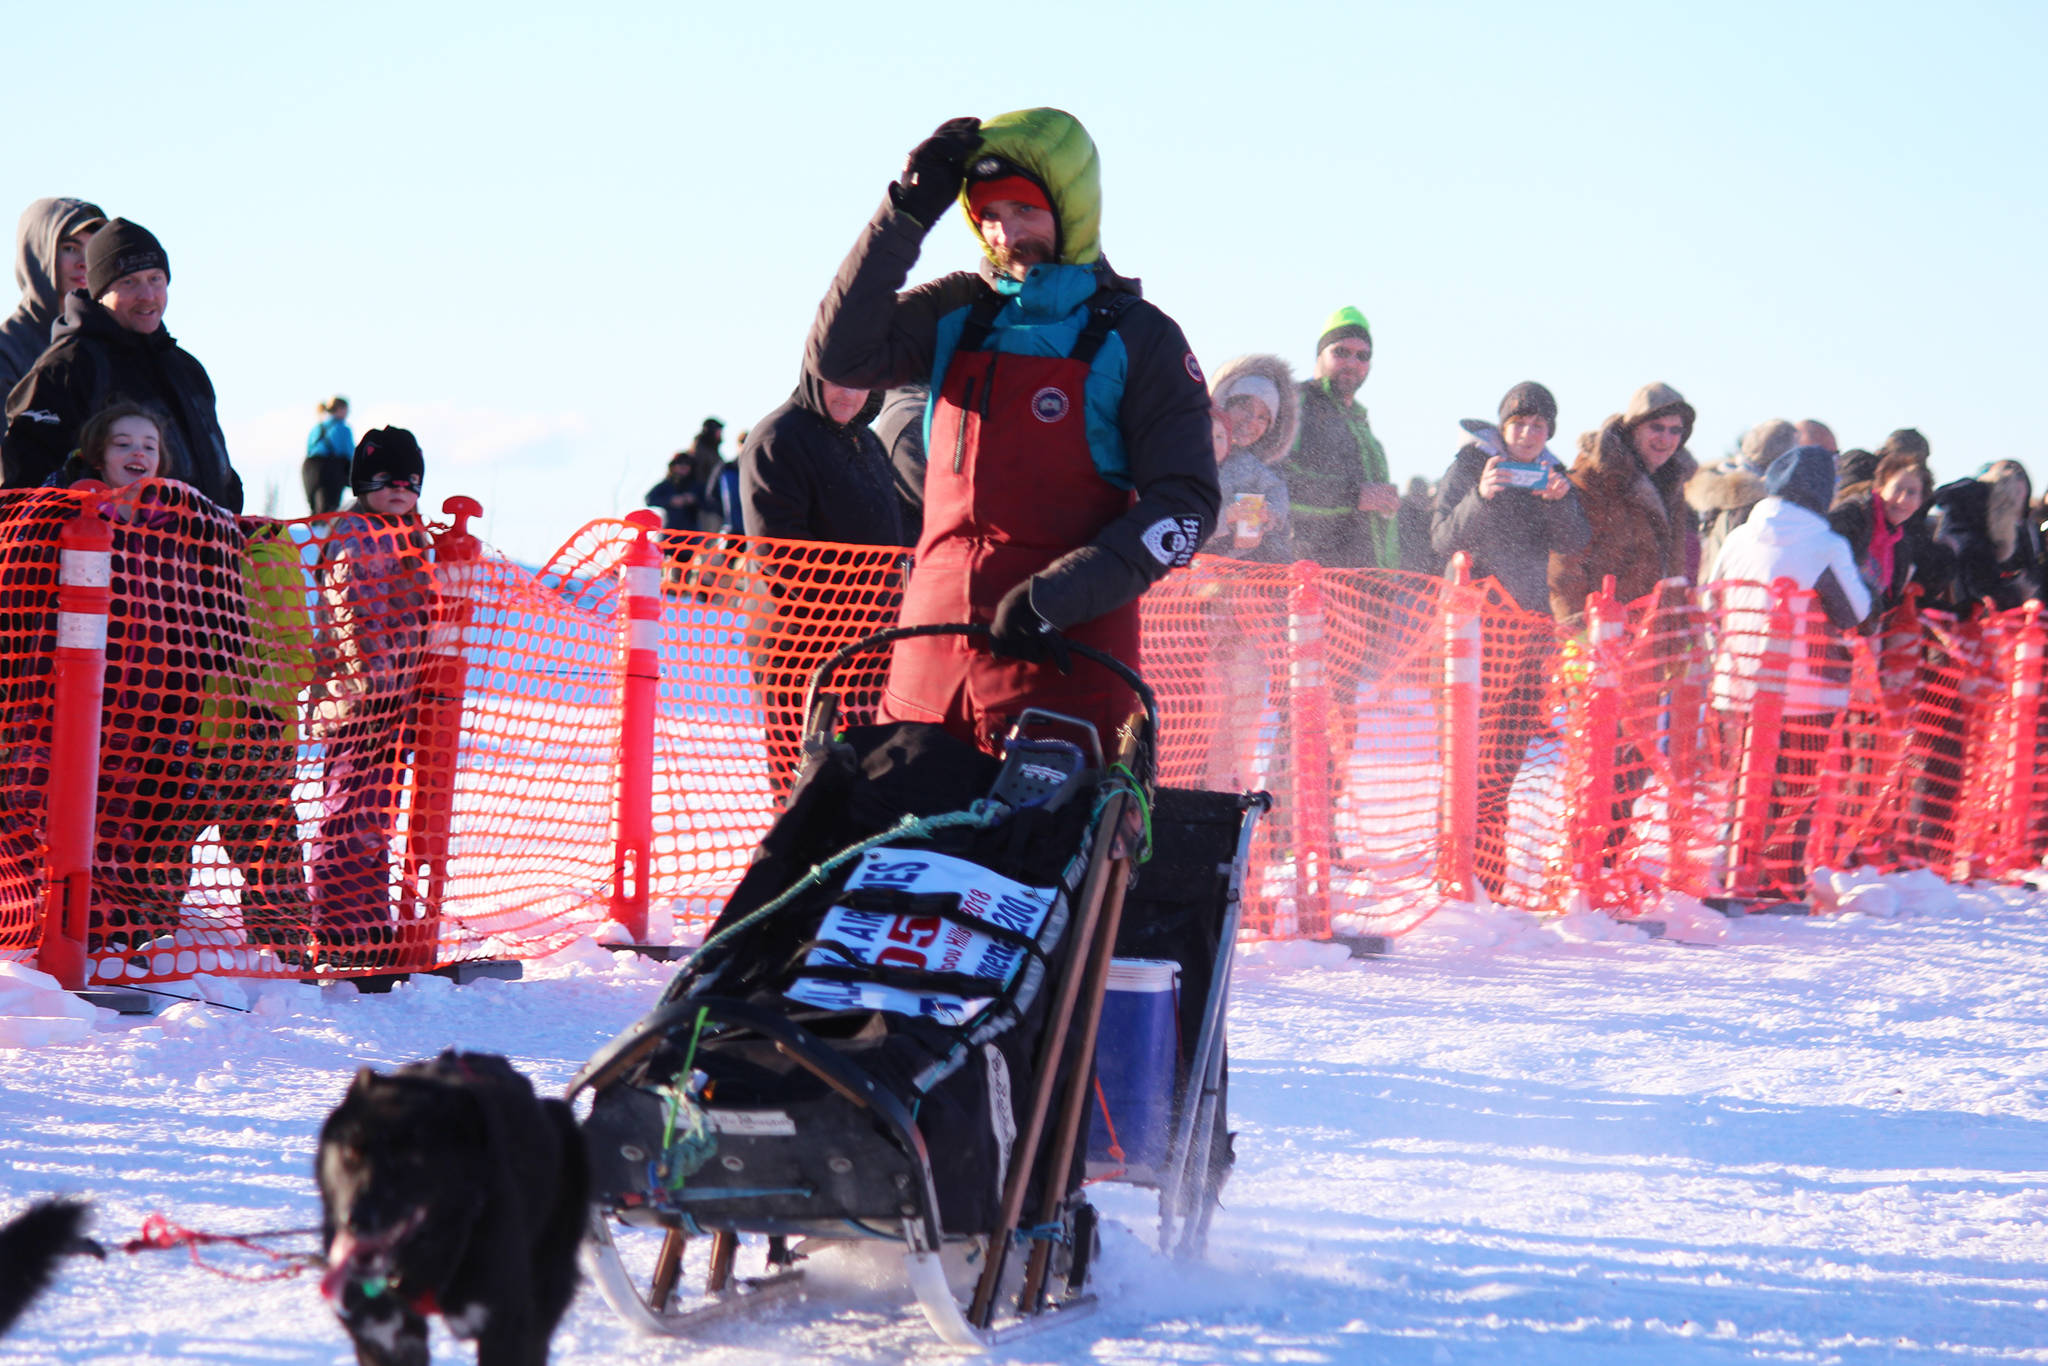 Musher Lance Mackey takes off from the starting line of the Tustumena 200 Sled Dog Race with his team Saturday, Jan. 27, 2018 at Freddie's Roadhouse in Ninilchik, Alaska. Lance returns to the race this year after being absent since about 2010, he said. The race was also canceled three years in a row from 2014-2016. (Photo by Megan Pacer/Homer News)